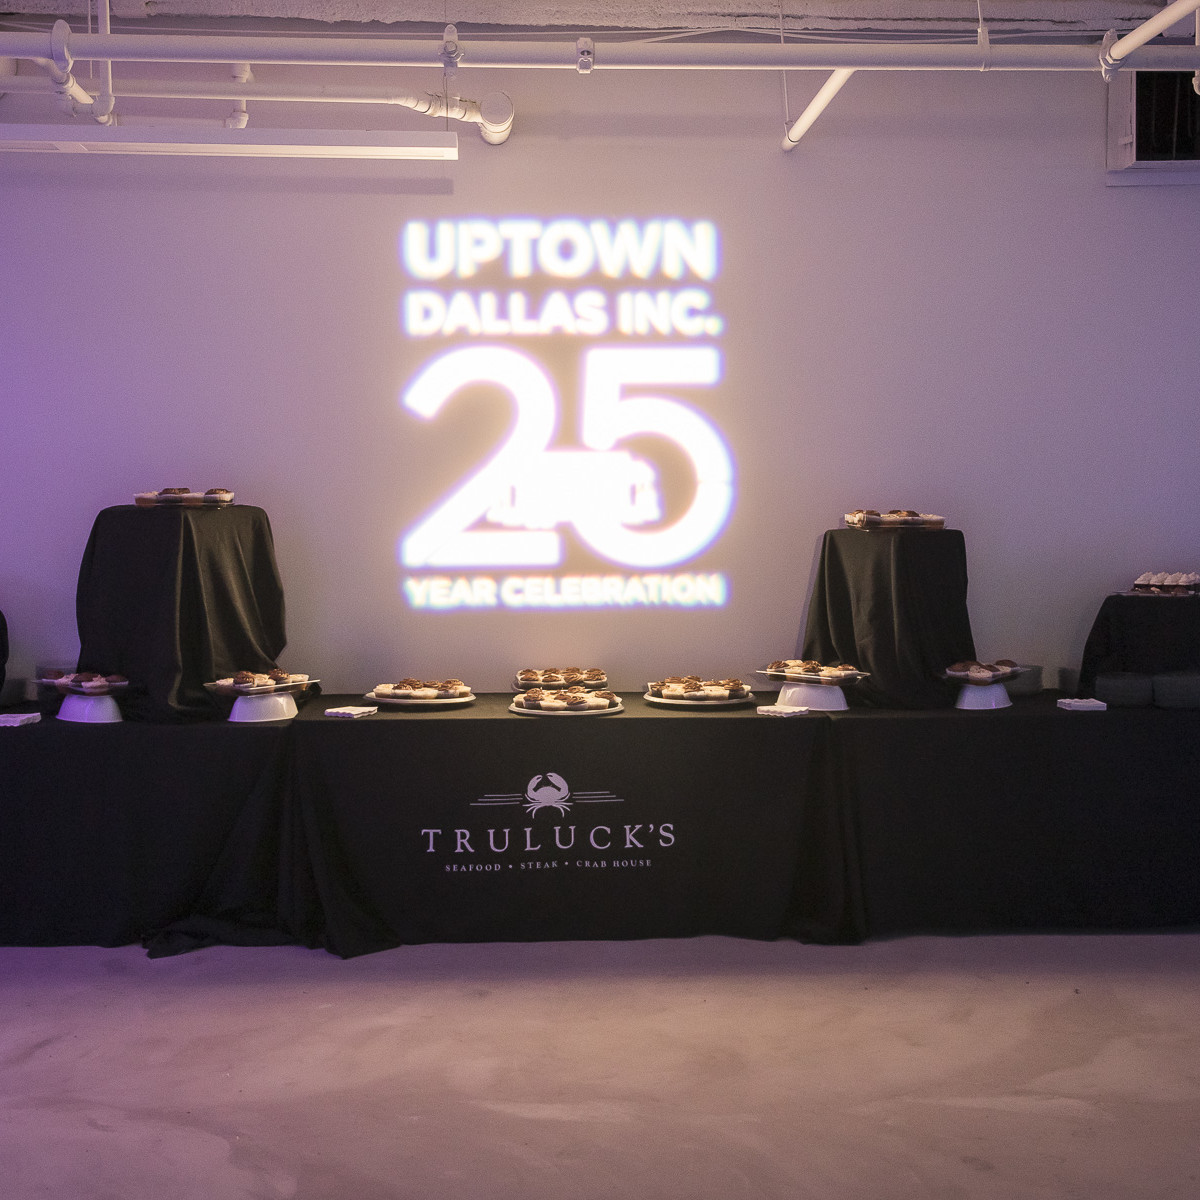 Uptown Dallas Inc. signature dinner